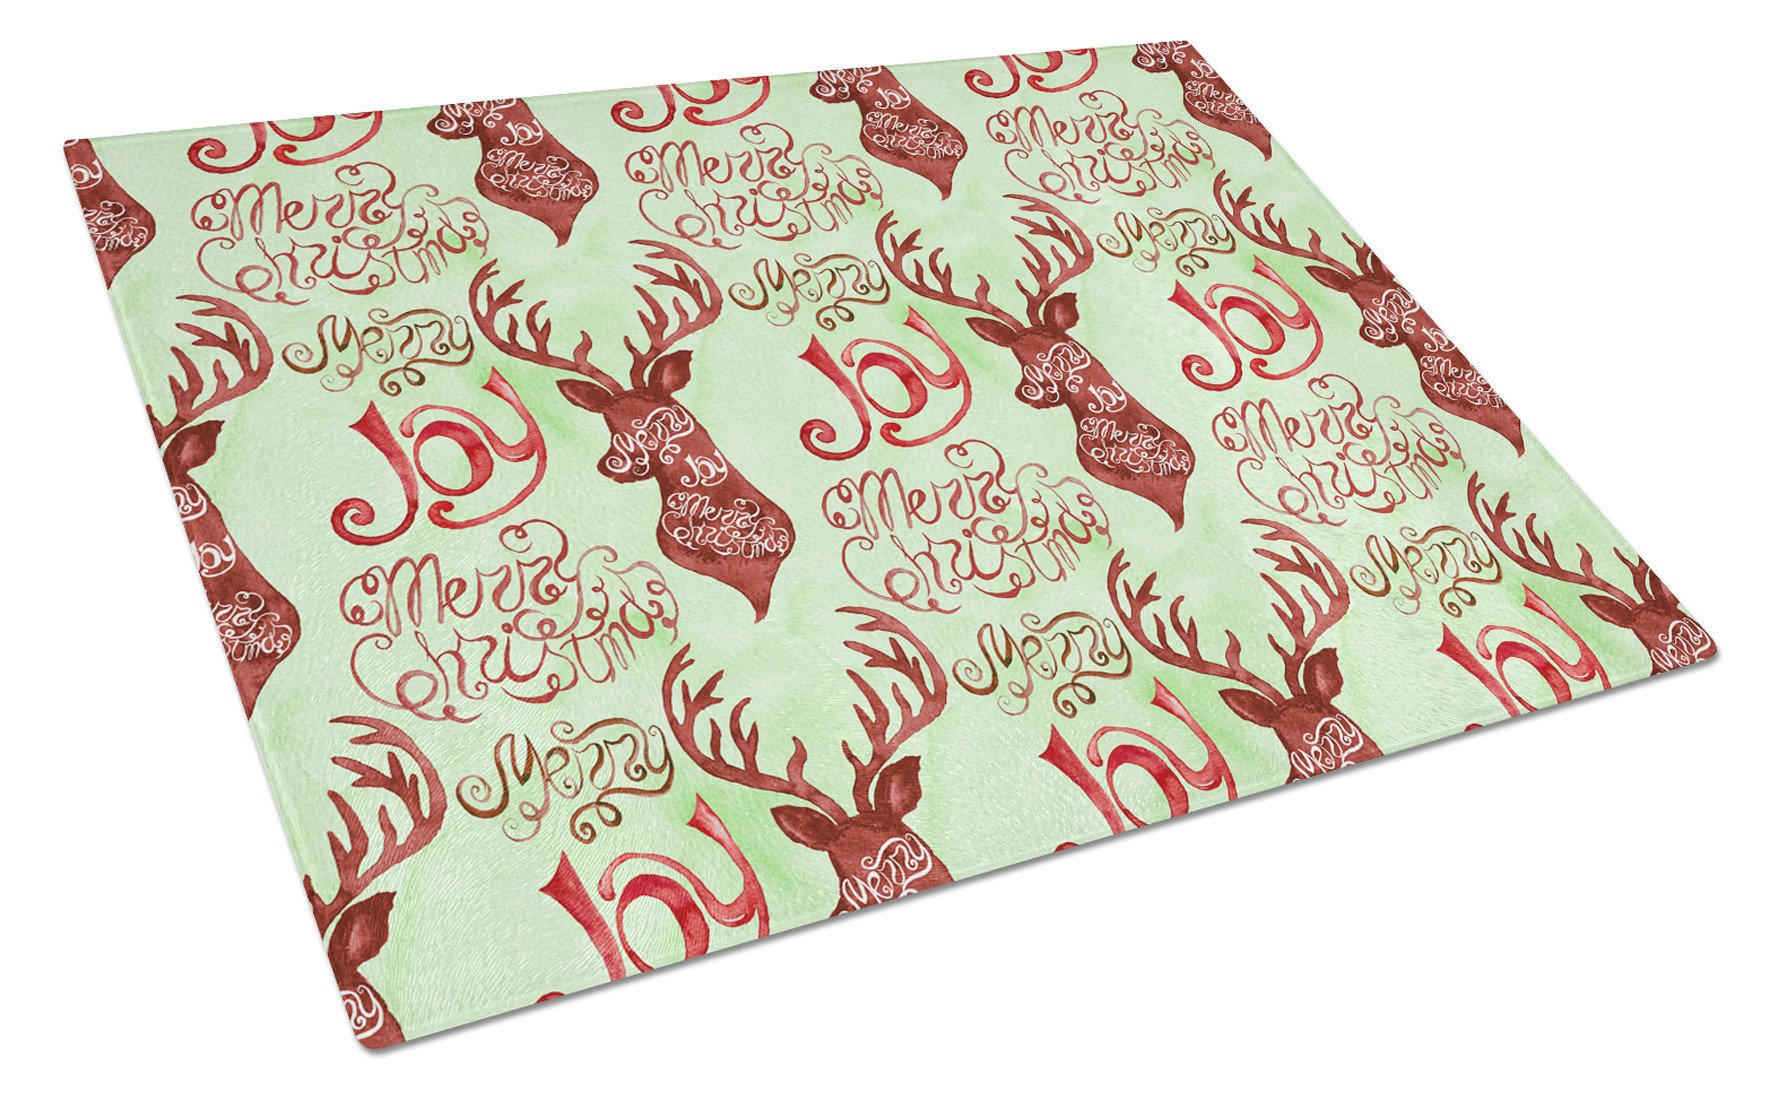 Merry Christmas Joy Reindeer Glass Cutting Board Large BB7488LCB by Caroline's Treasures